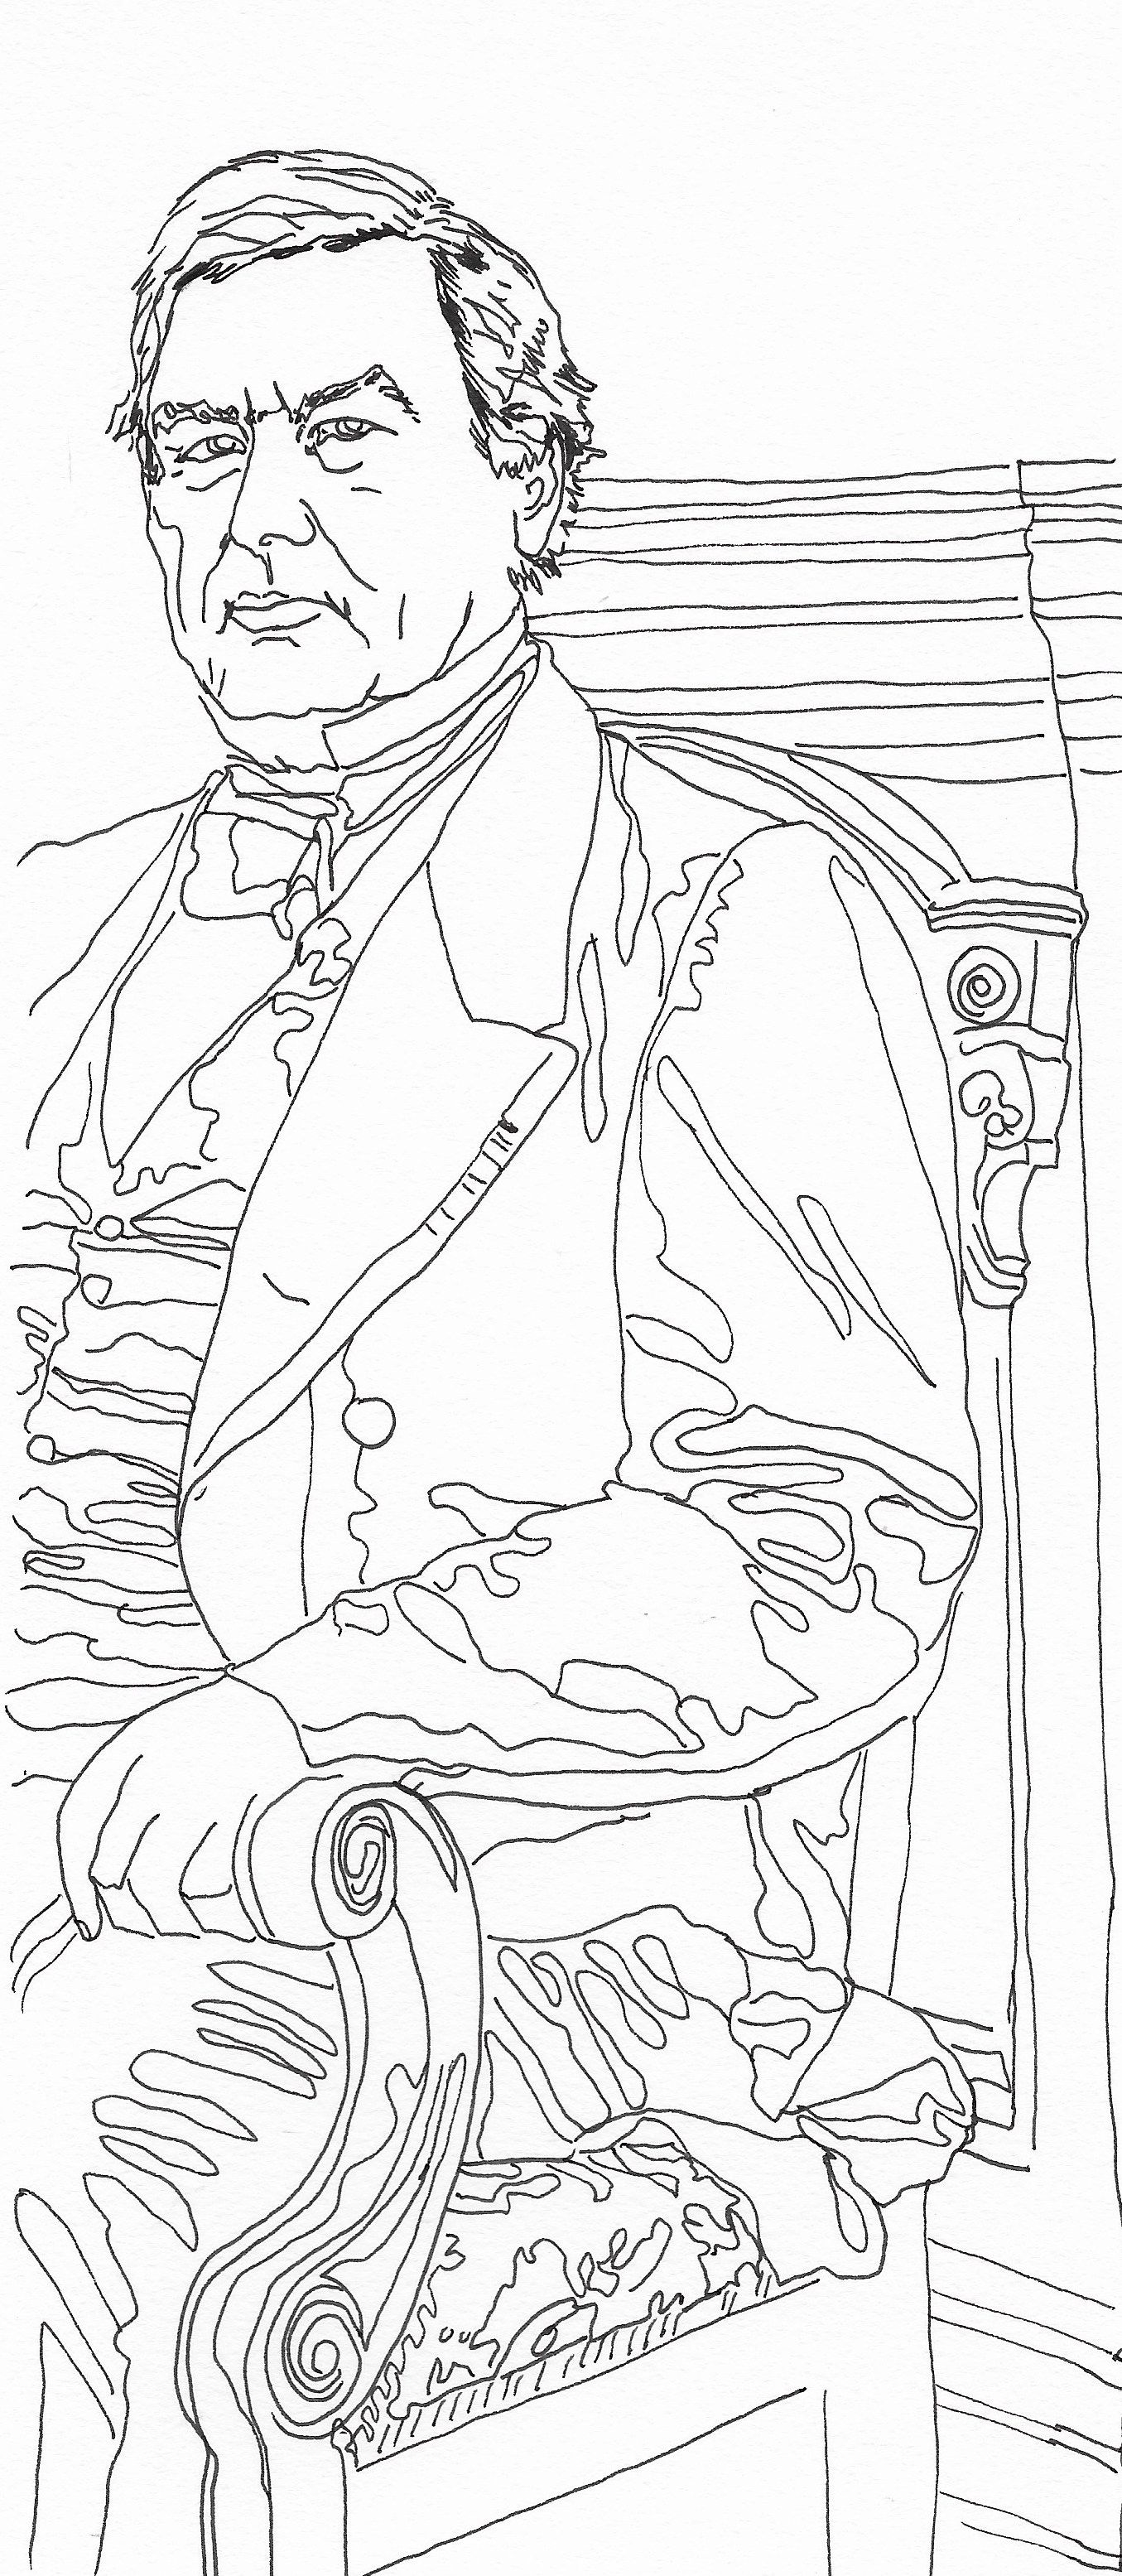 13th president millard fillmore a page from us presidents coloring book